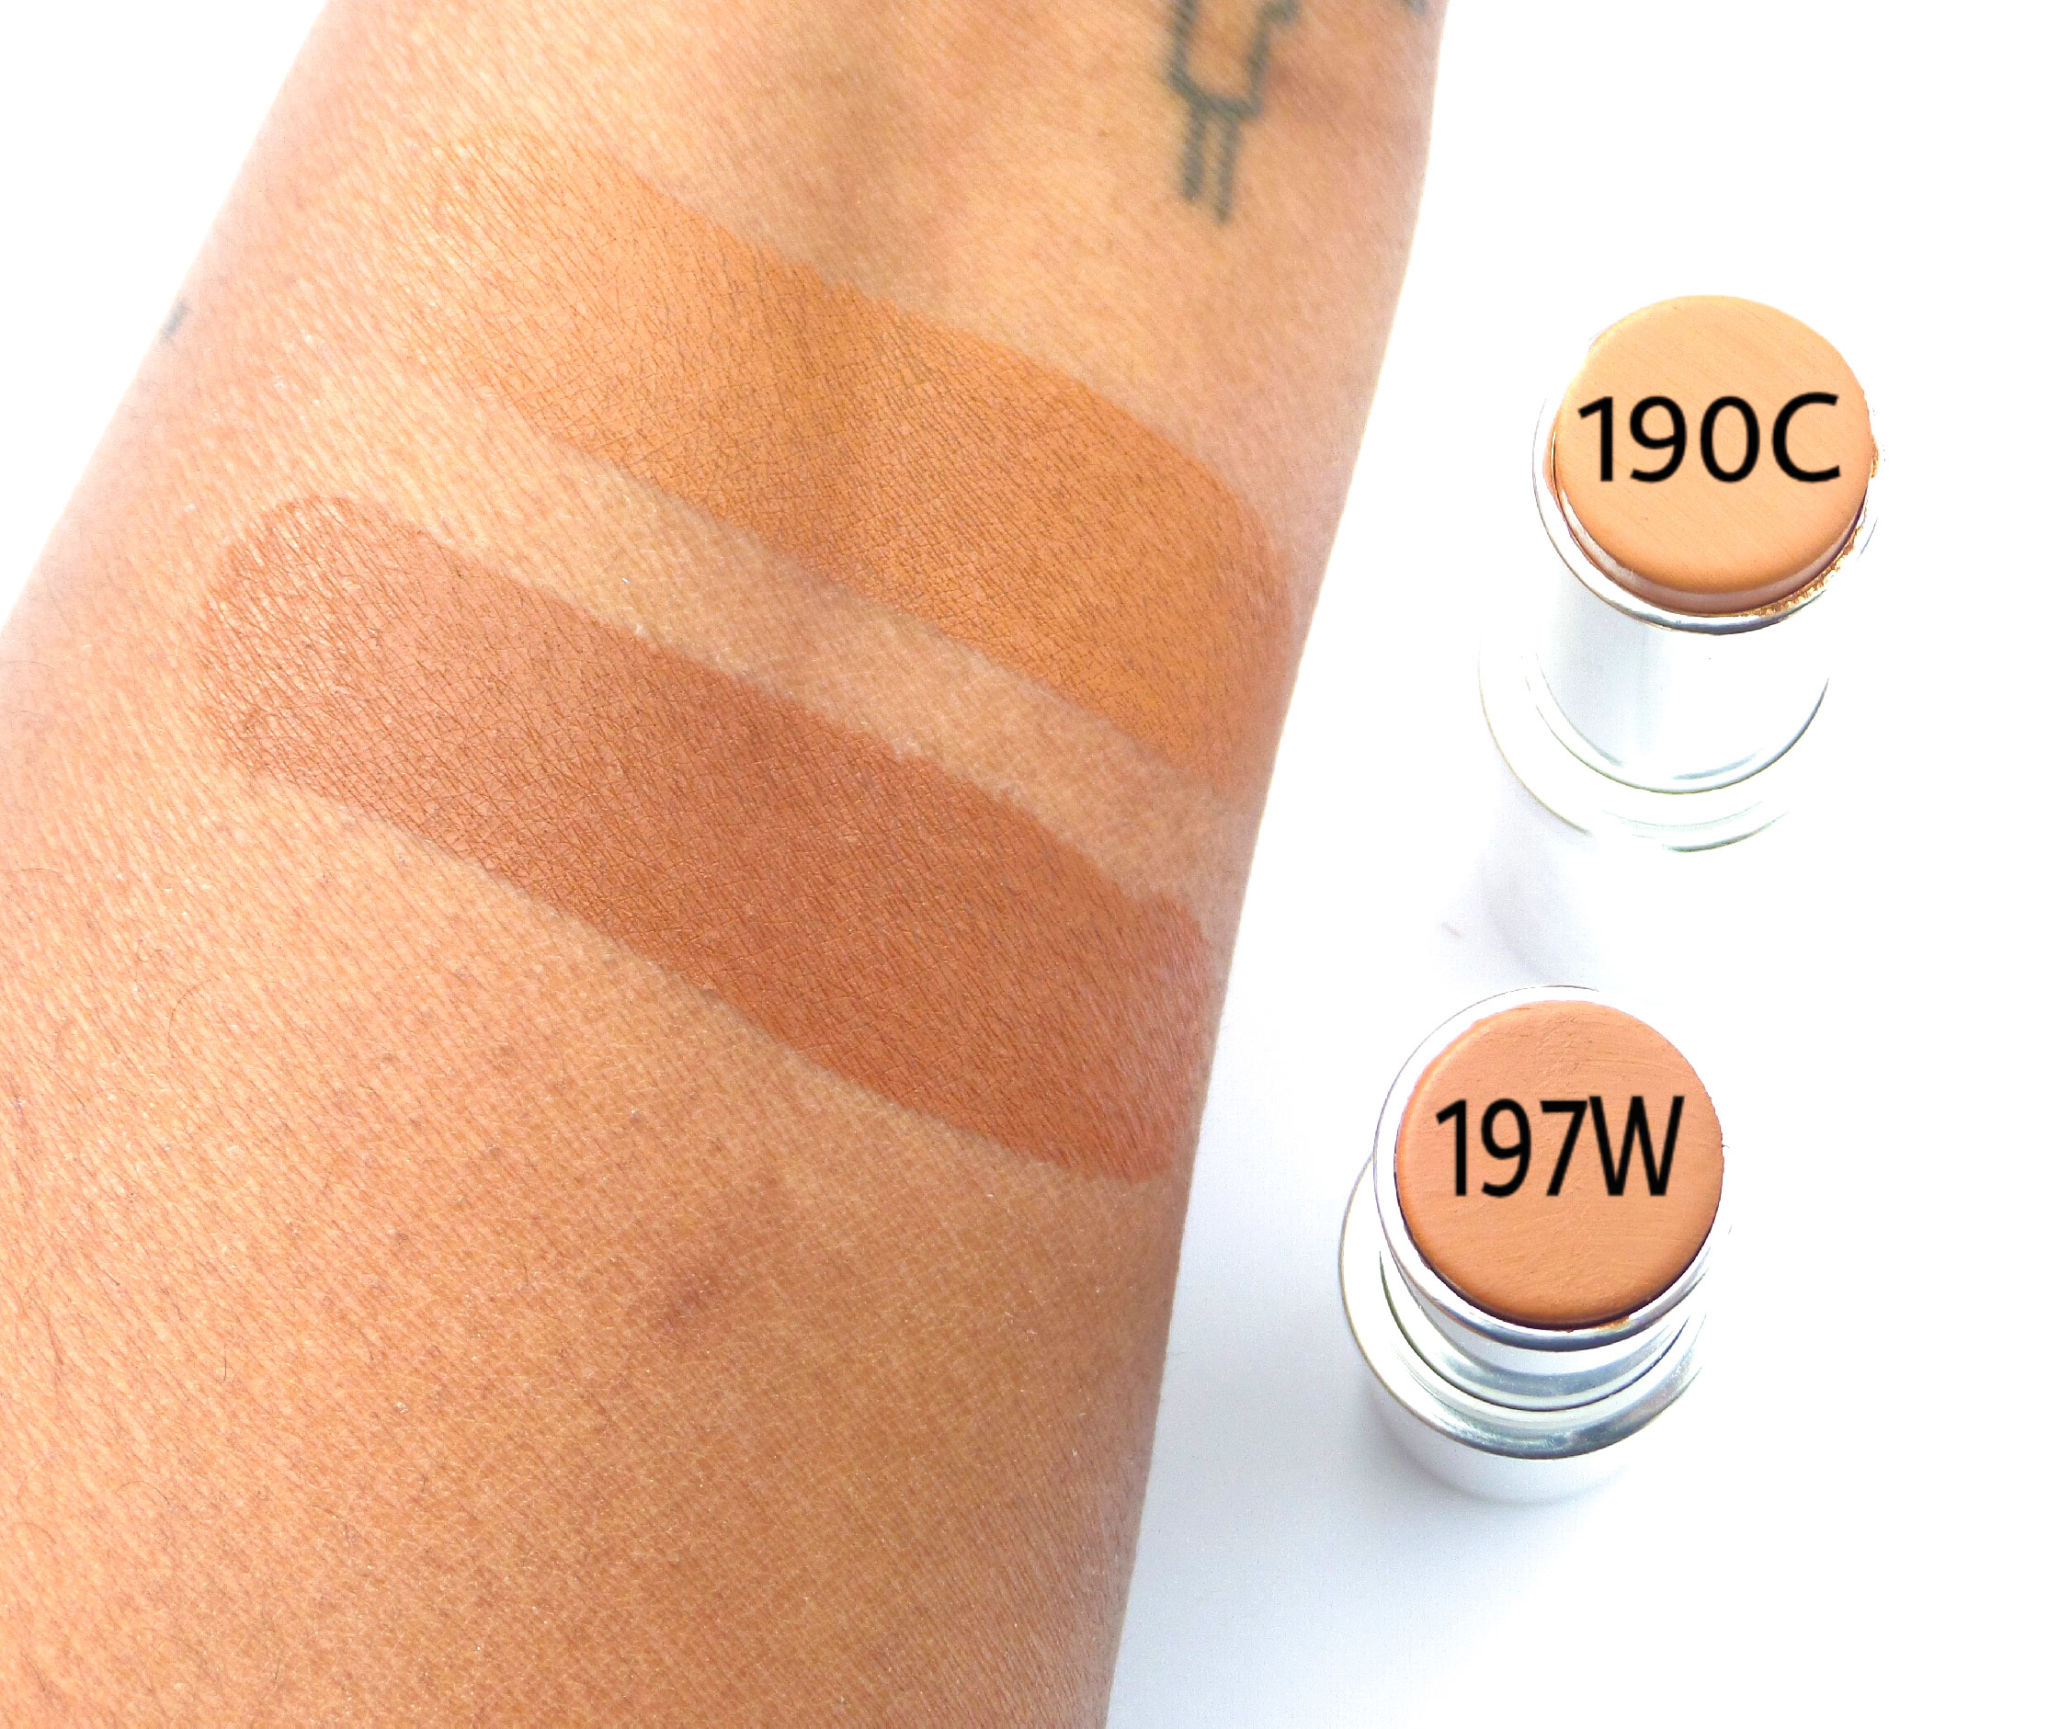 Colourpop No Filter Foundation Stix Swatches Review 190c And 197w